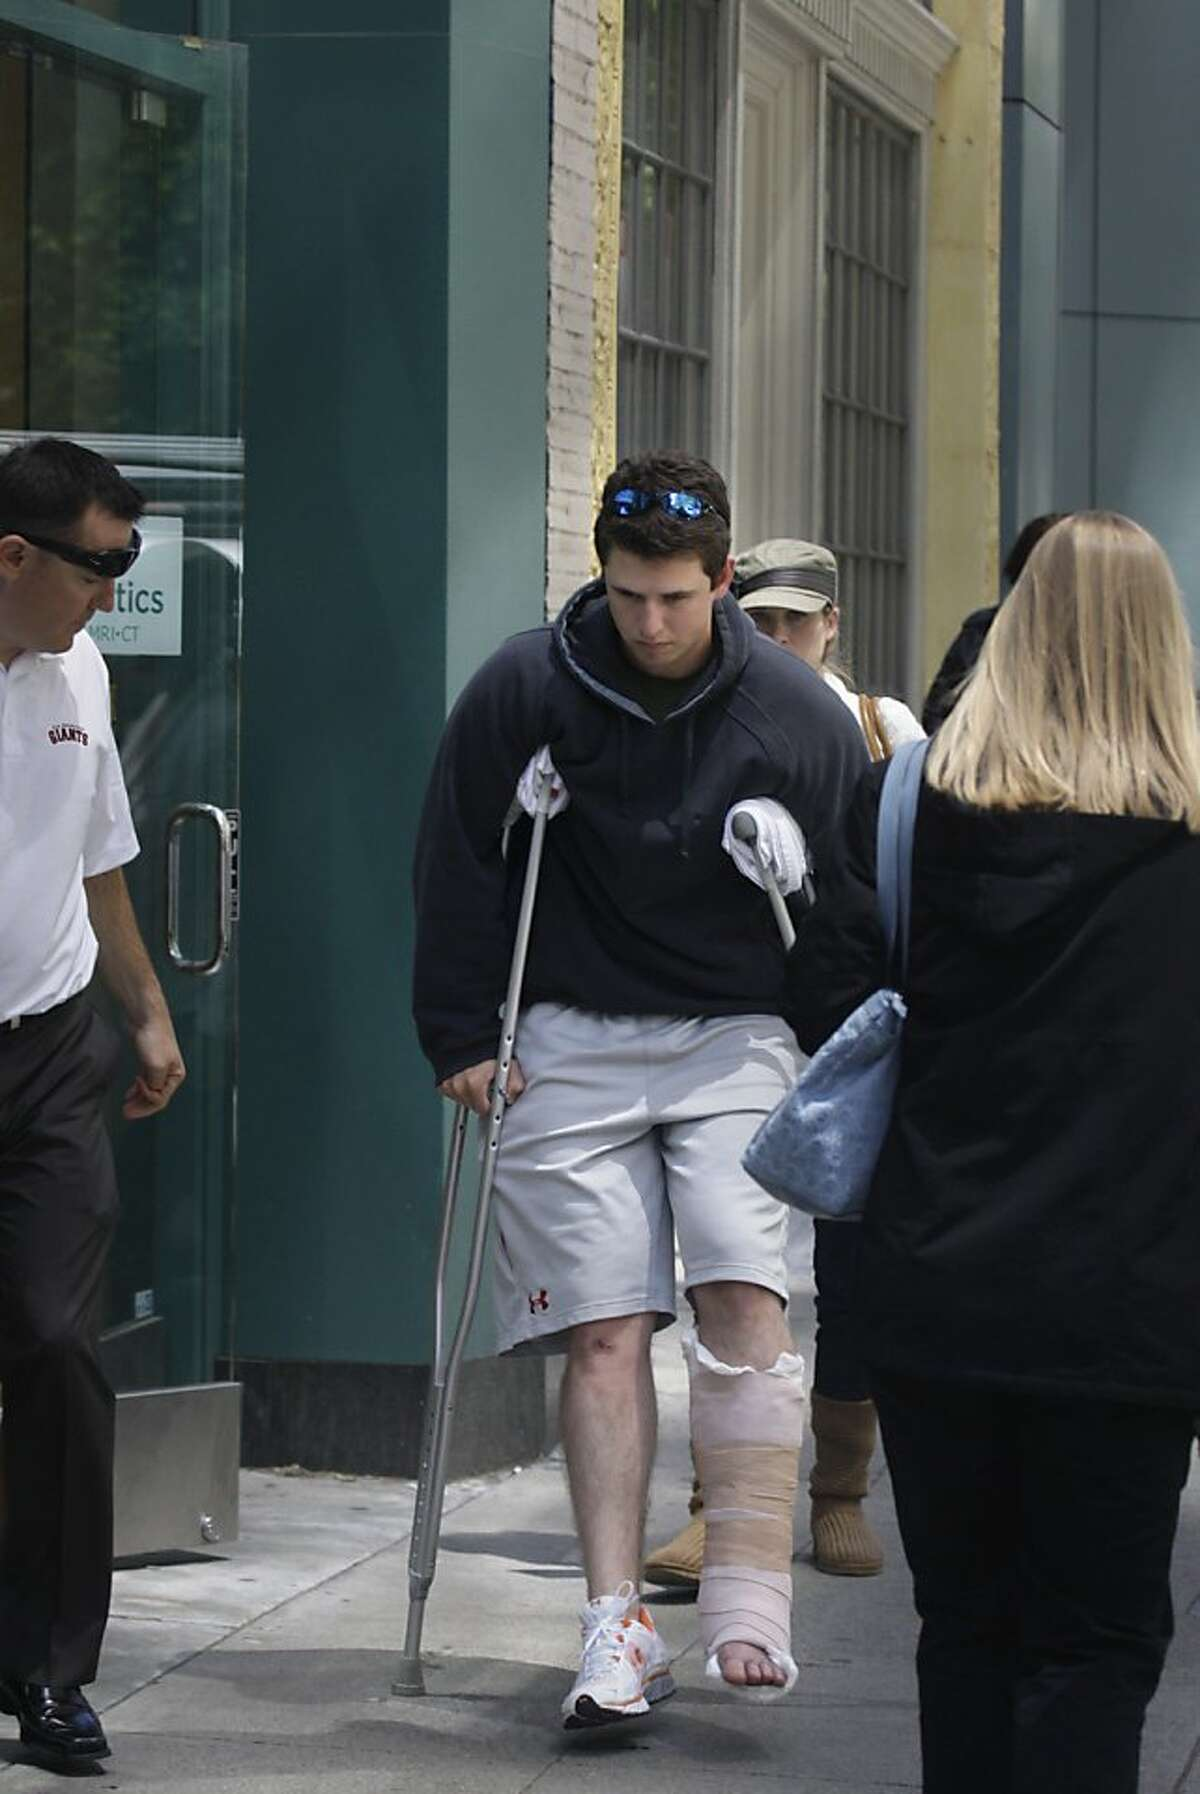 Giants catcher Buster Posey is seen leaving Health Diagnostics the day after breaking his leg in San Francisco, Calif., Thursday, May 26, 2011. Posey broke his leg on a play at home after colliding with Florida Marlins' Scott Cousins during the 12th inniGiants catcher Buster Posey is seen leaving Health Diagnostics the day after breaking his leg in San Francisco, Calif., Thursday, May 26, 2011. Posey broke his leg on a play at home after colliding with Florida Marlins' Scott Cousins during the 12th inning of a baseball game in San Francisco on Wednesday, May 25, 2011.